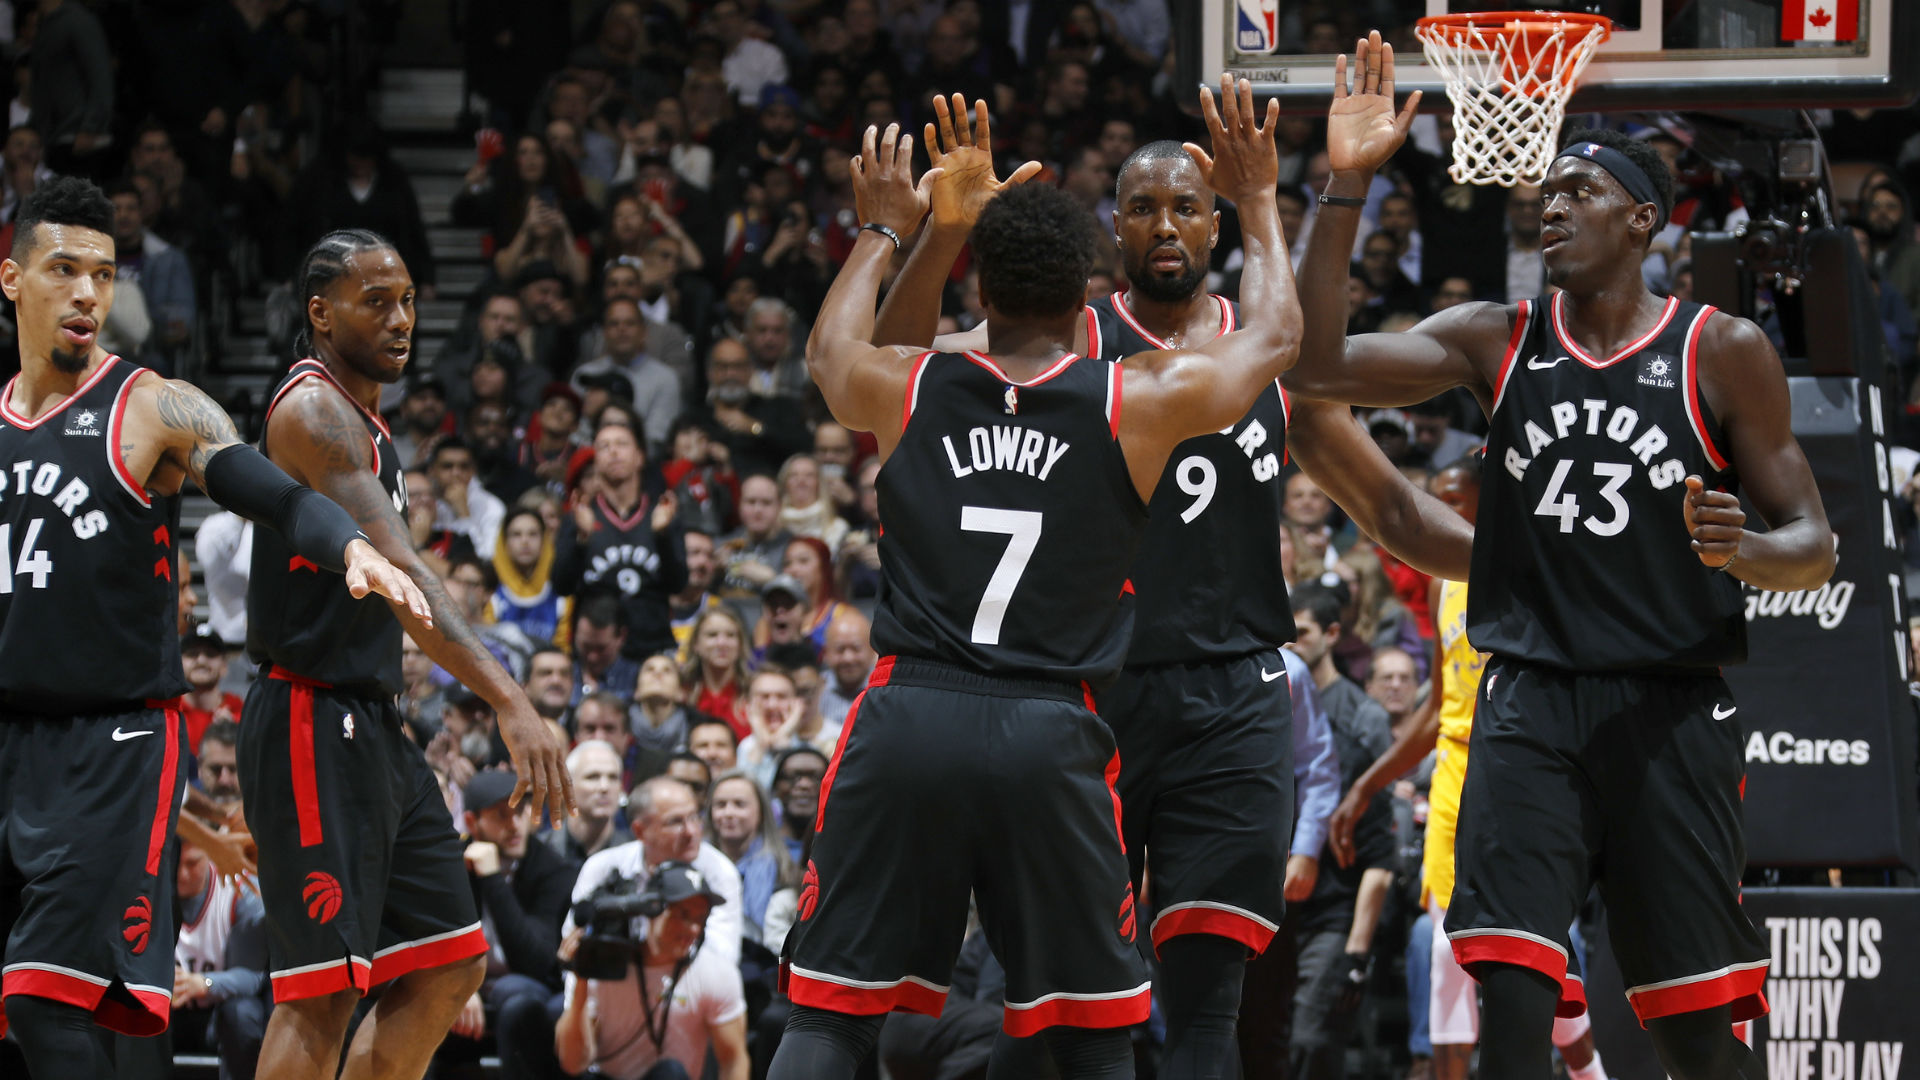 Raptors News: Five Takeaways From The Toronto Raptors Thrilling Overtime